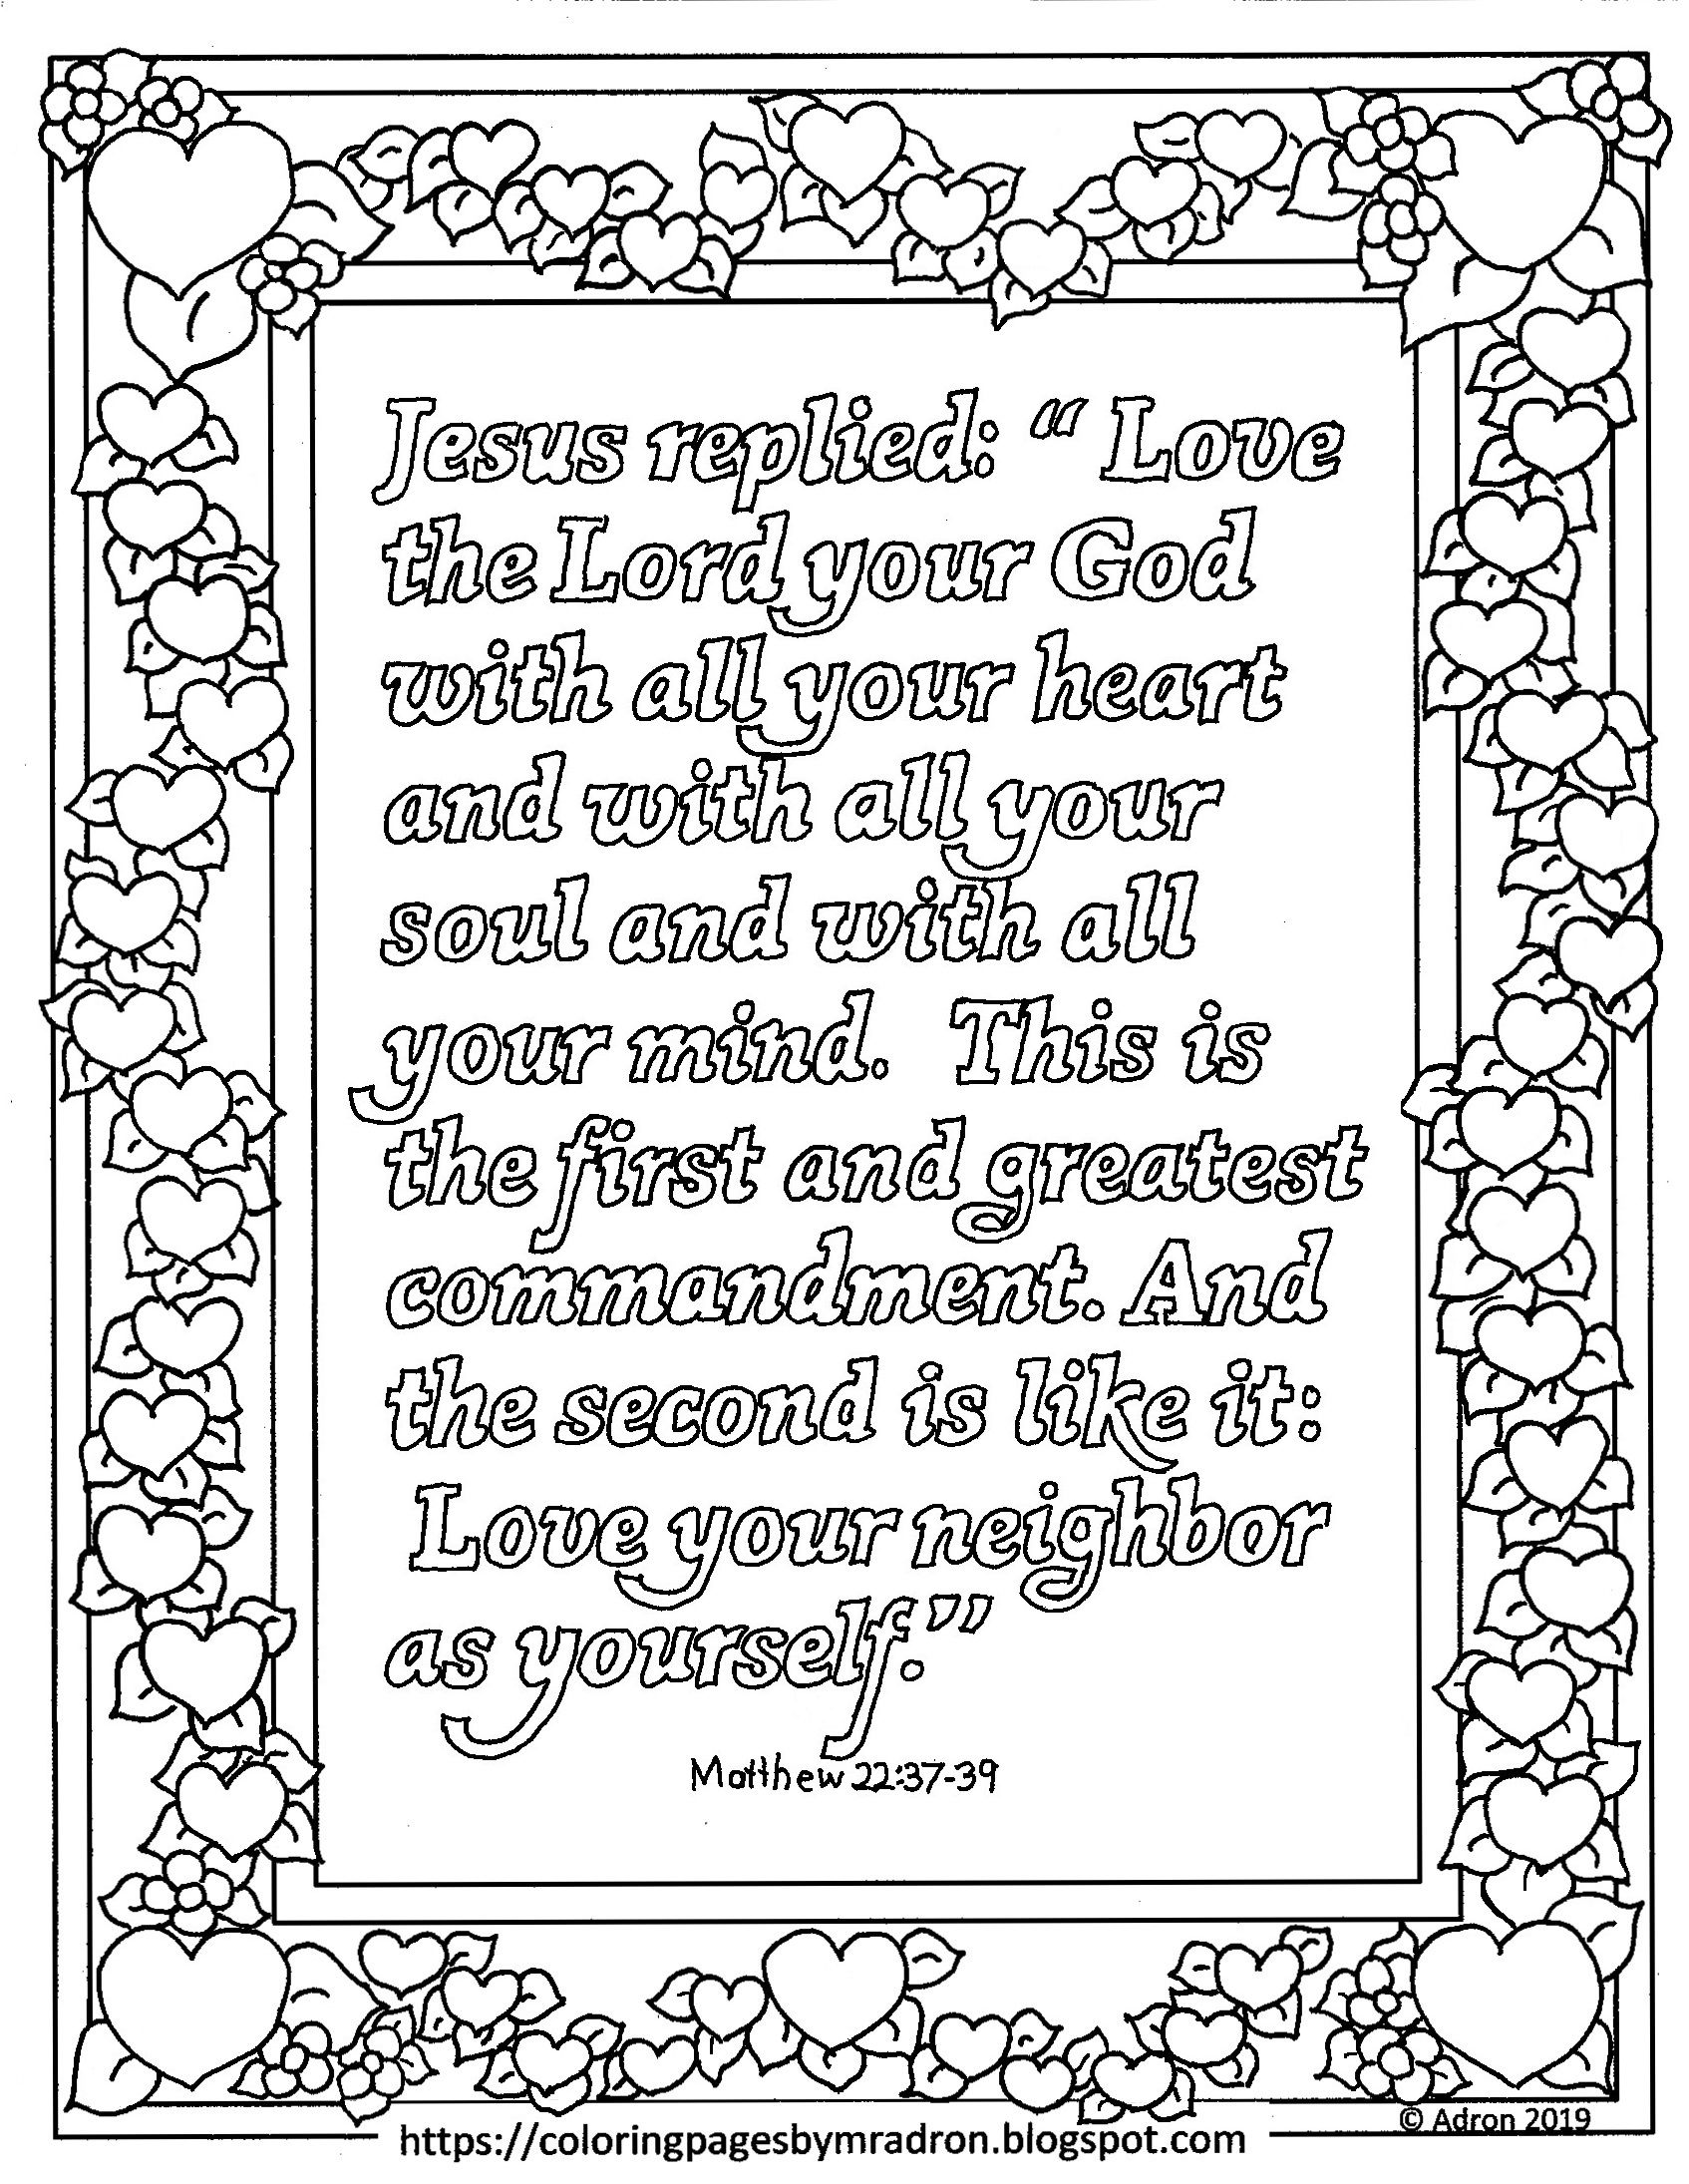 Free Printable Matthew 22 37 39 Coloring Page The Greatest